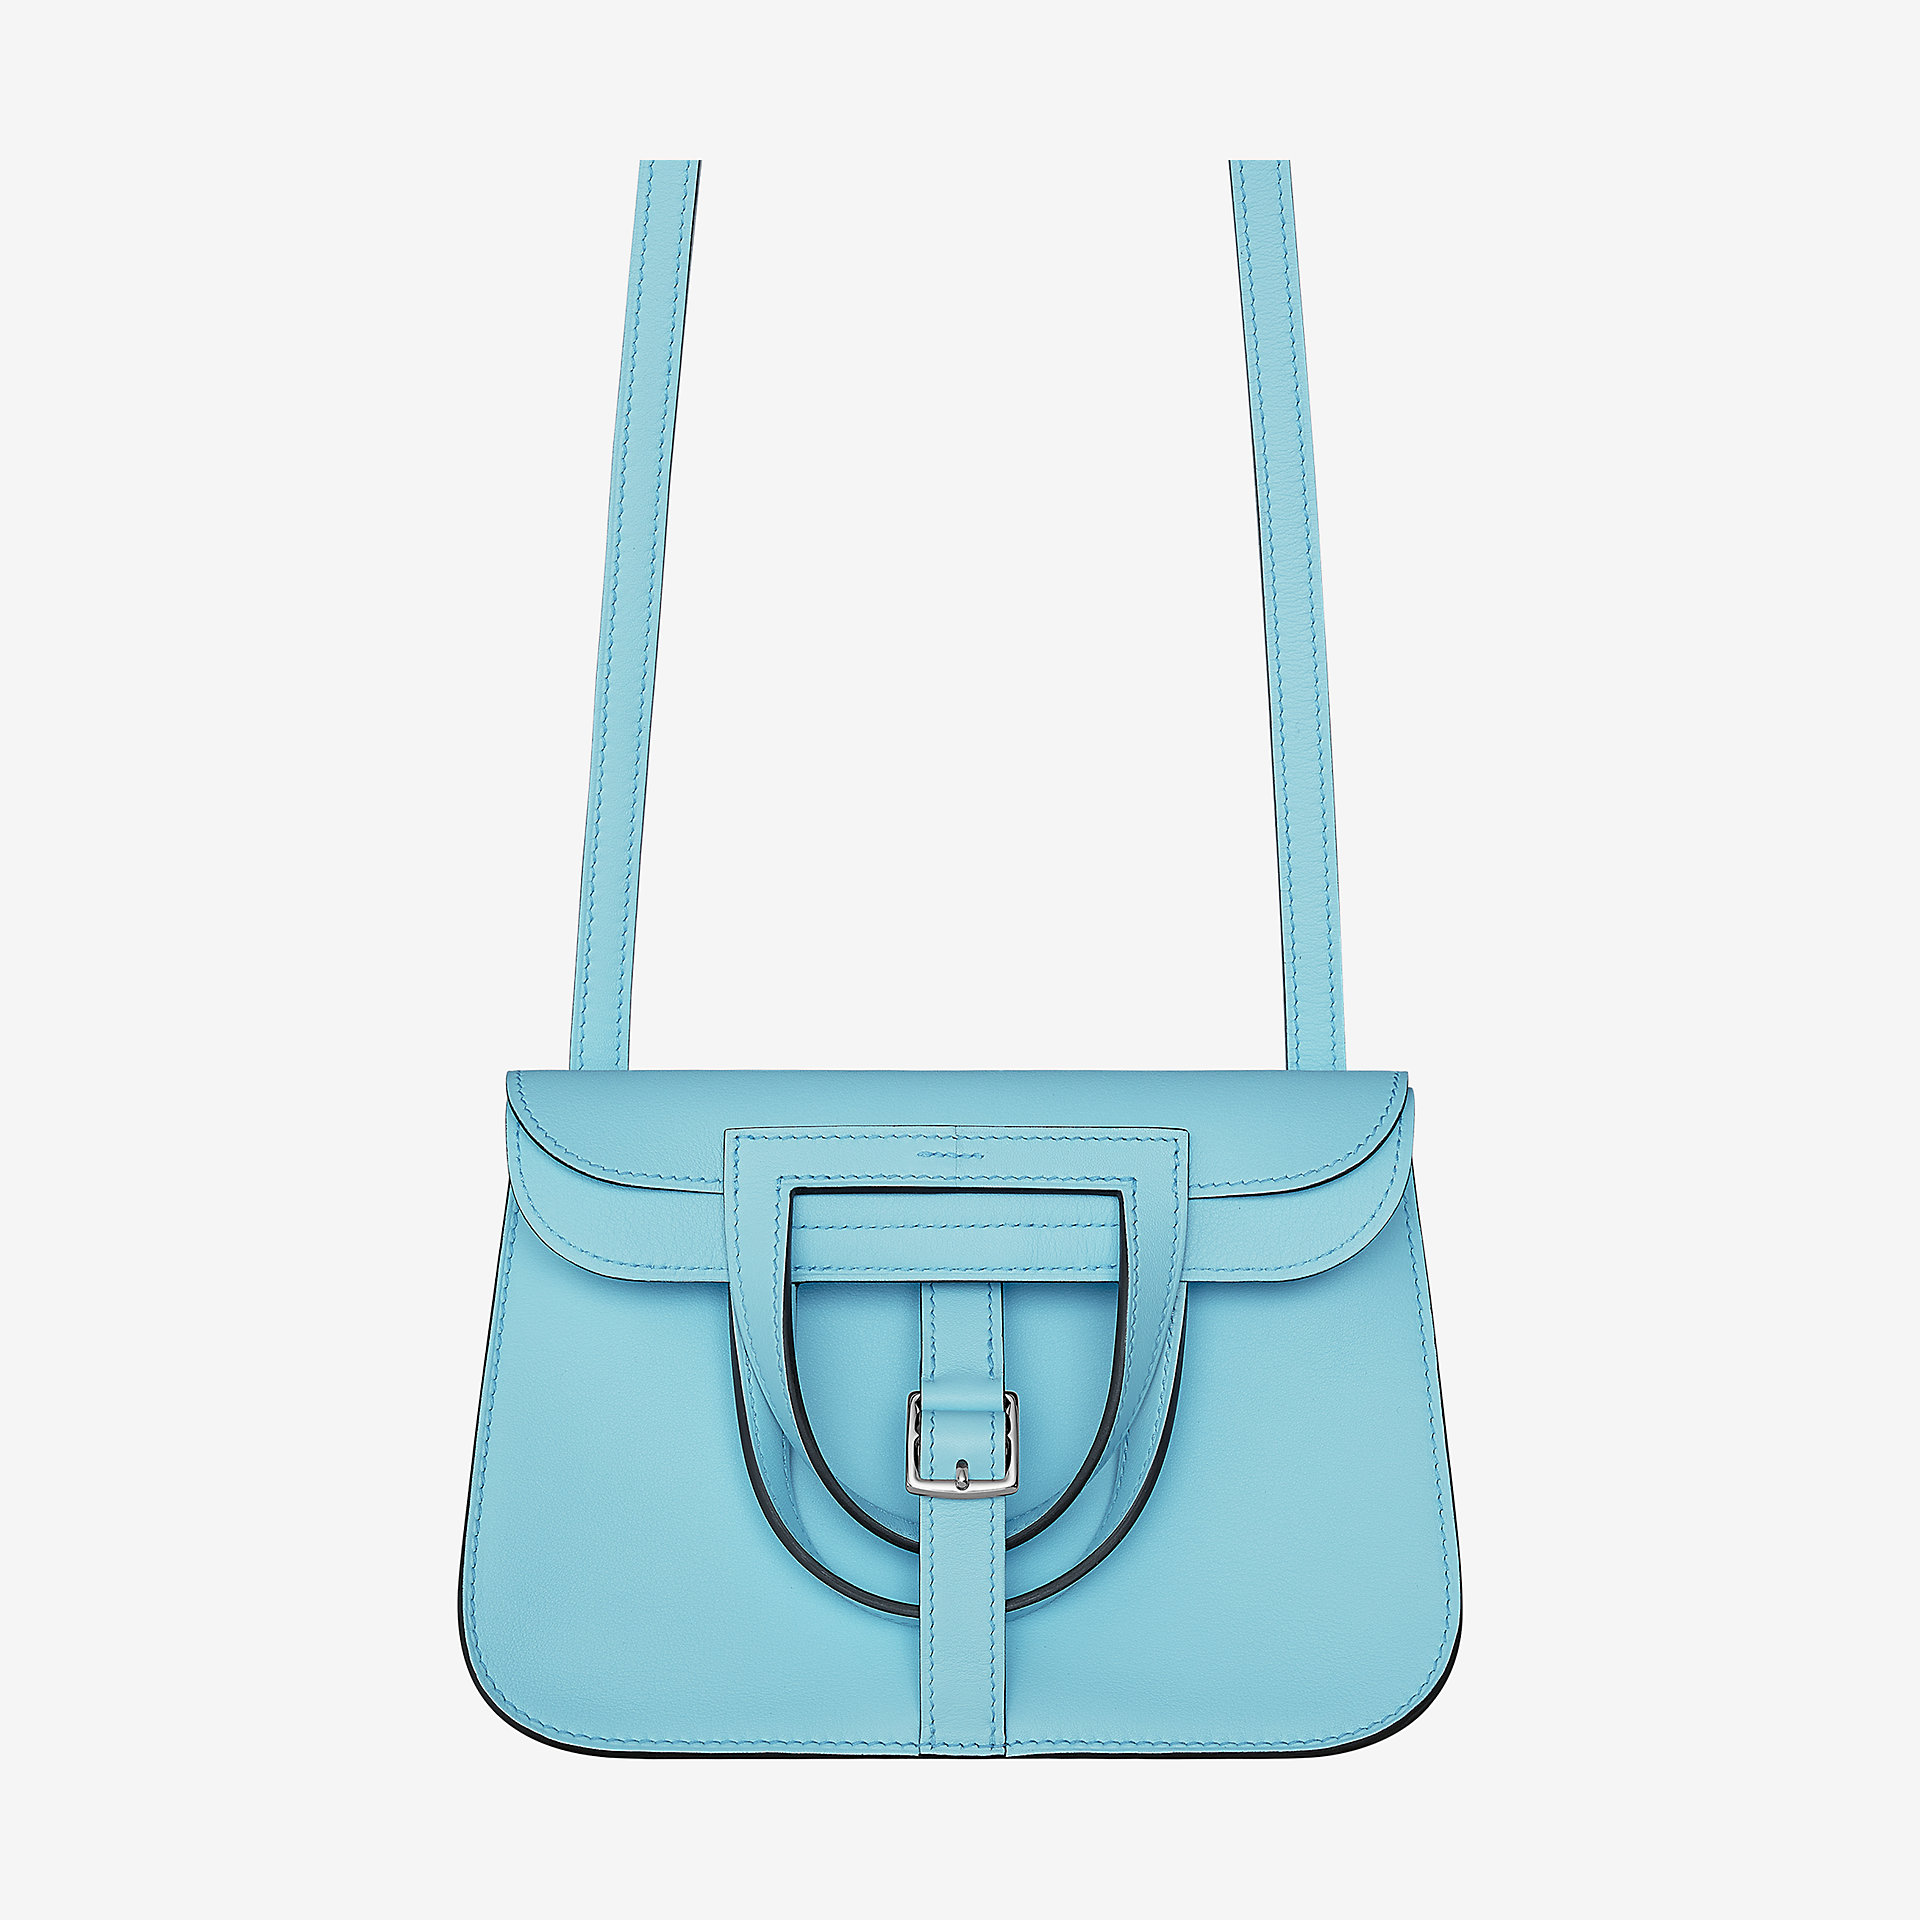 Hermes Halzan mini bag迷你手提袋bleu zéphyr Swift calfskin 小牛皮手提包